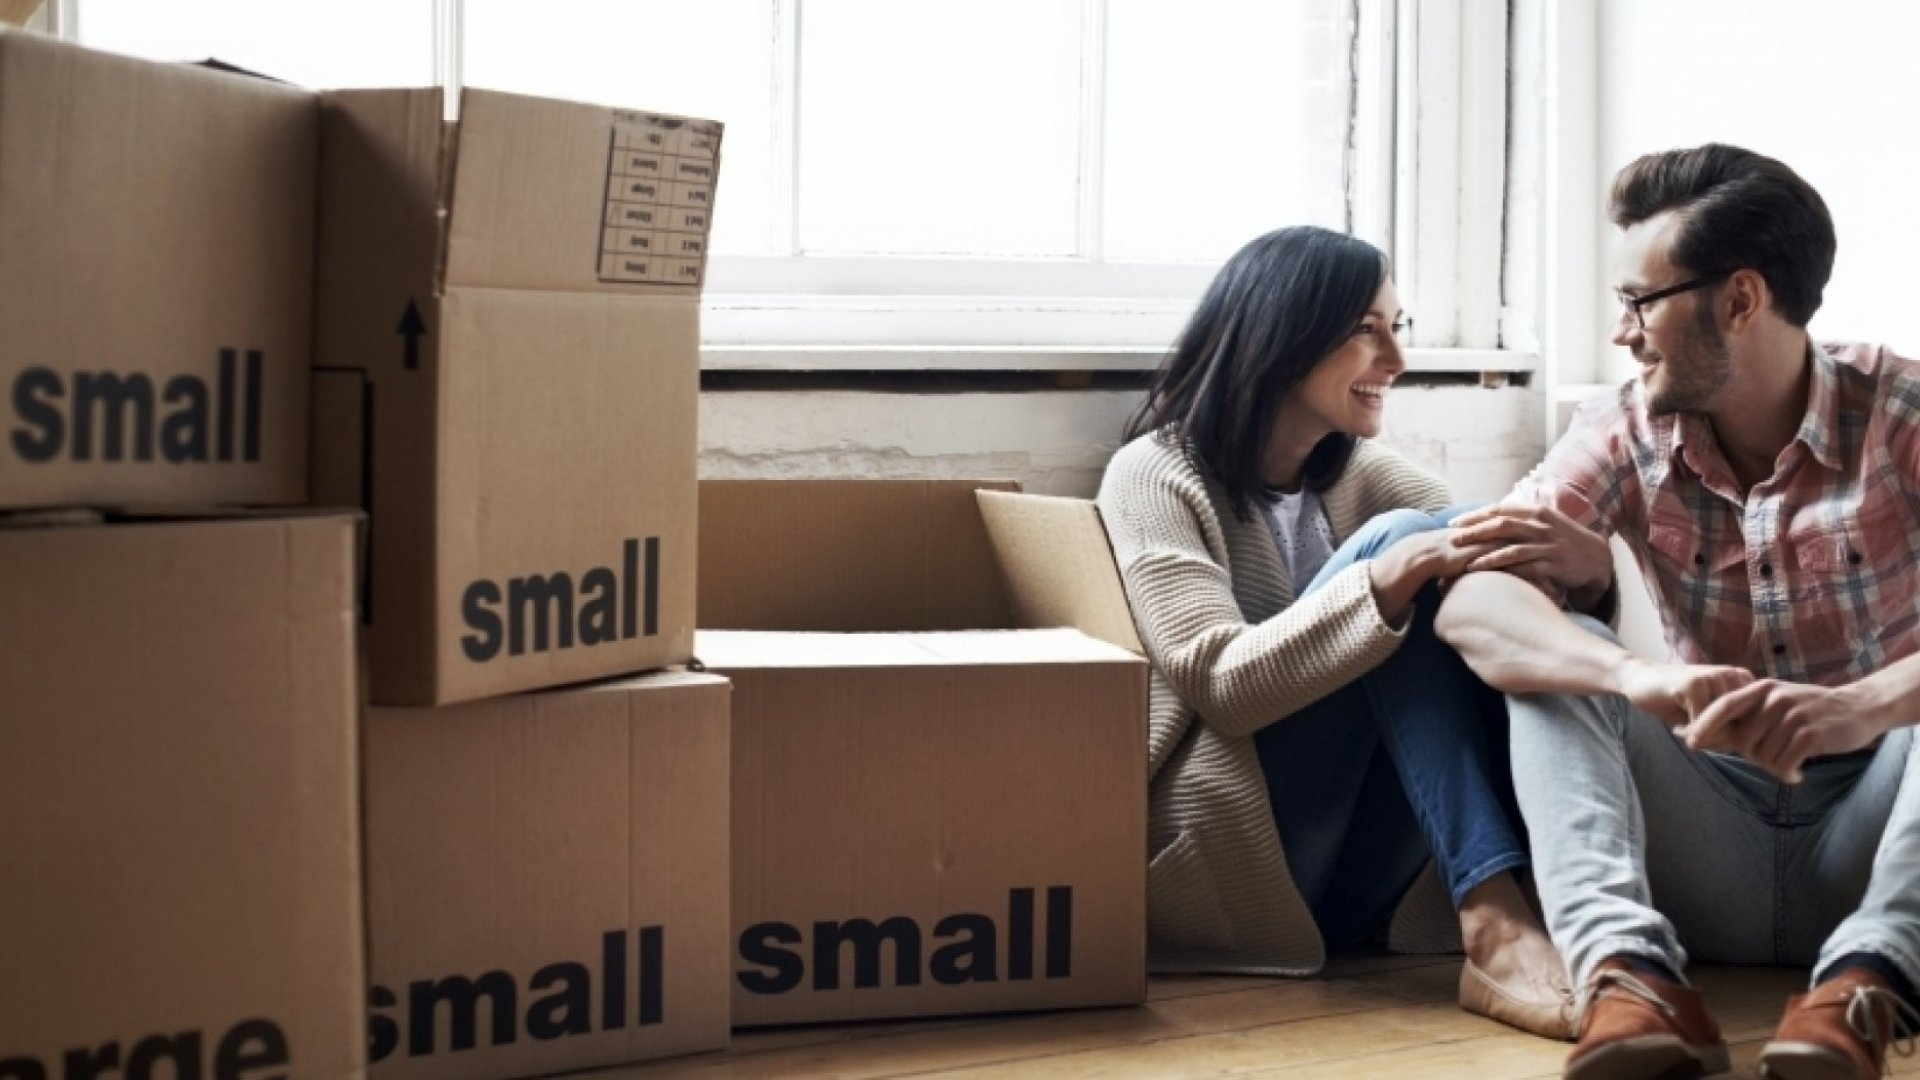 Thinking of Moving for a Job Opportunity? Consider These 3 Things First